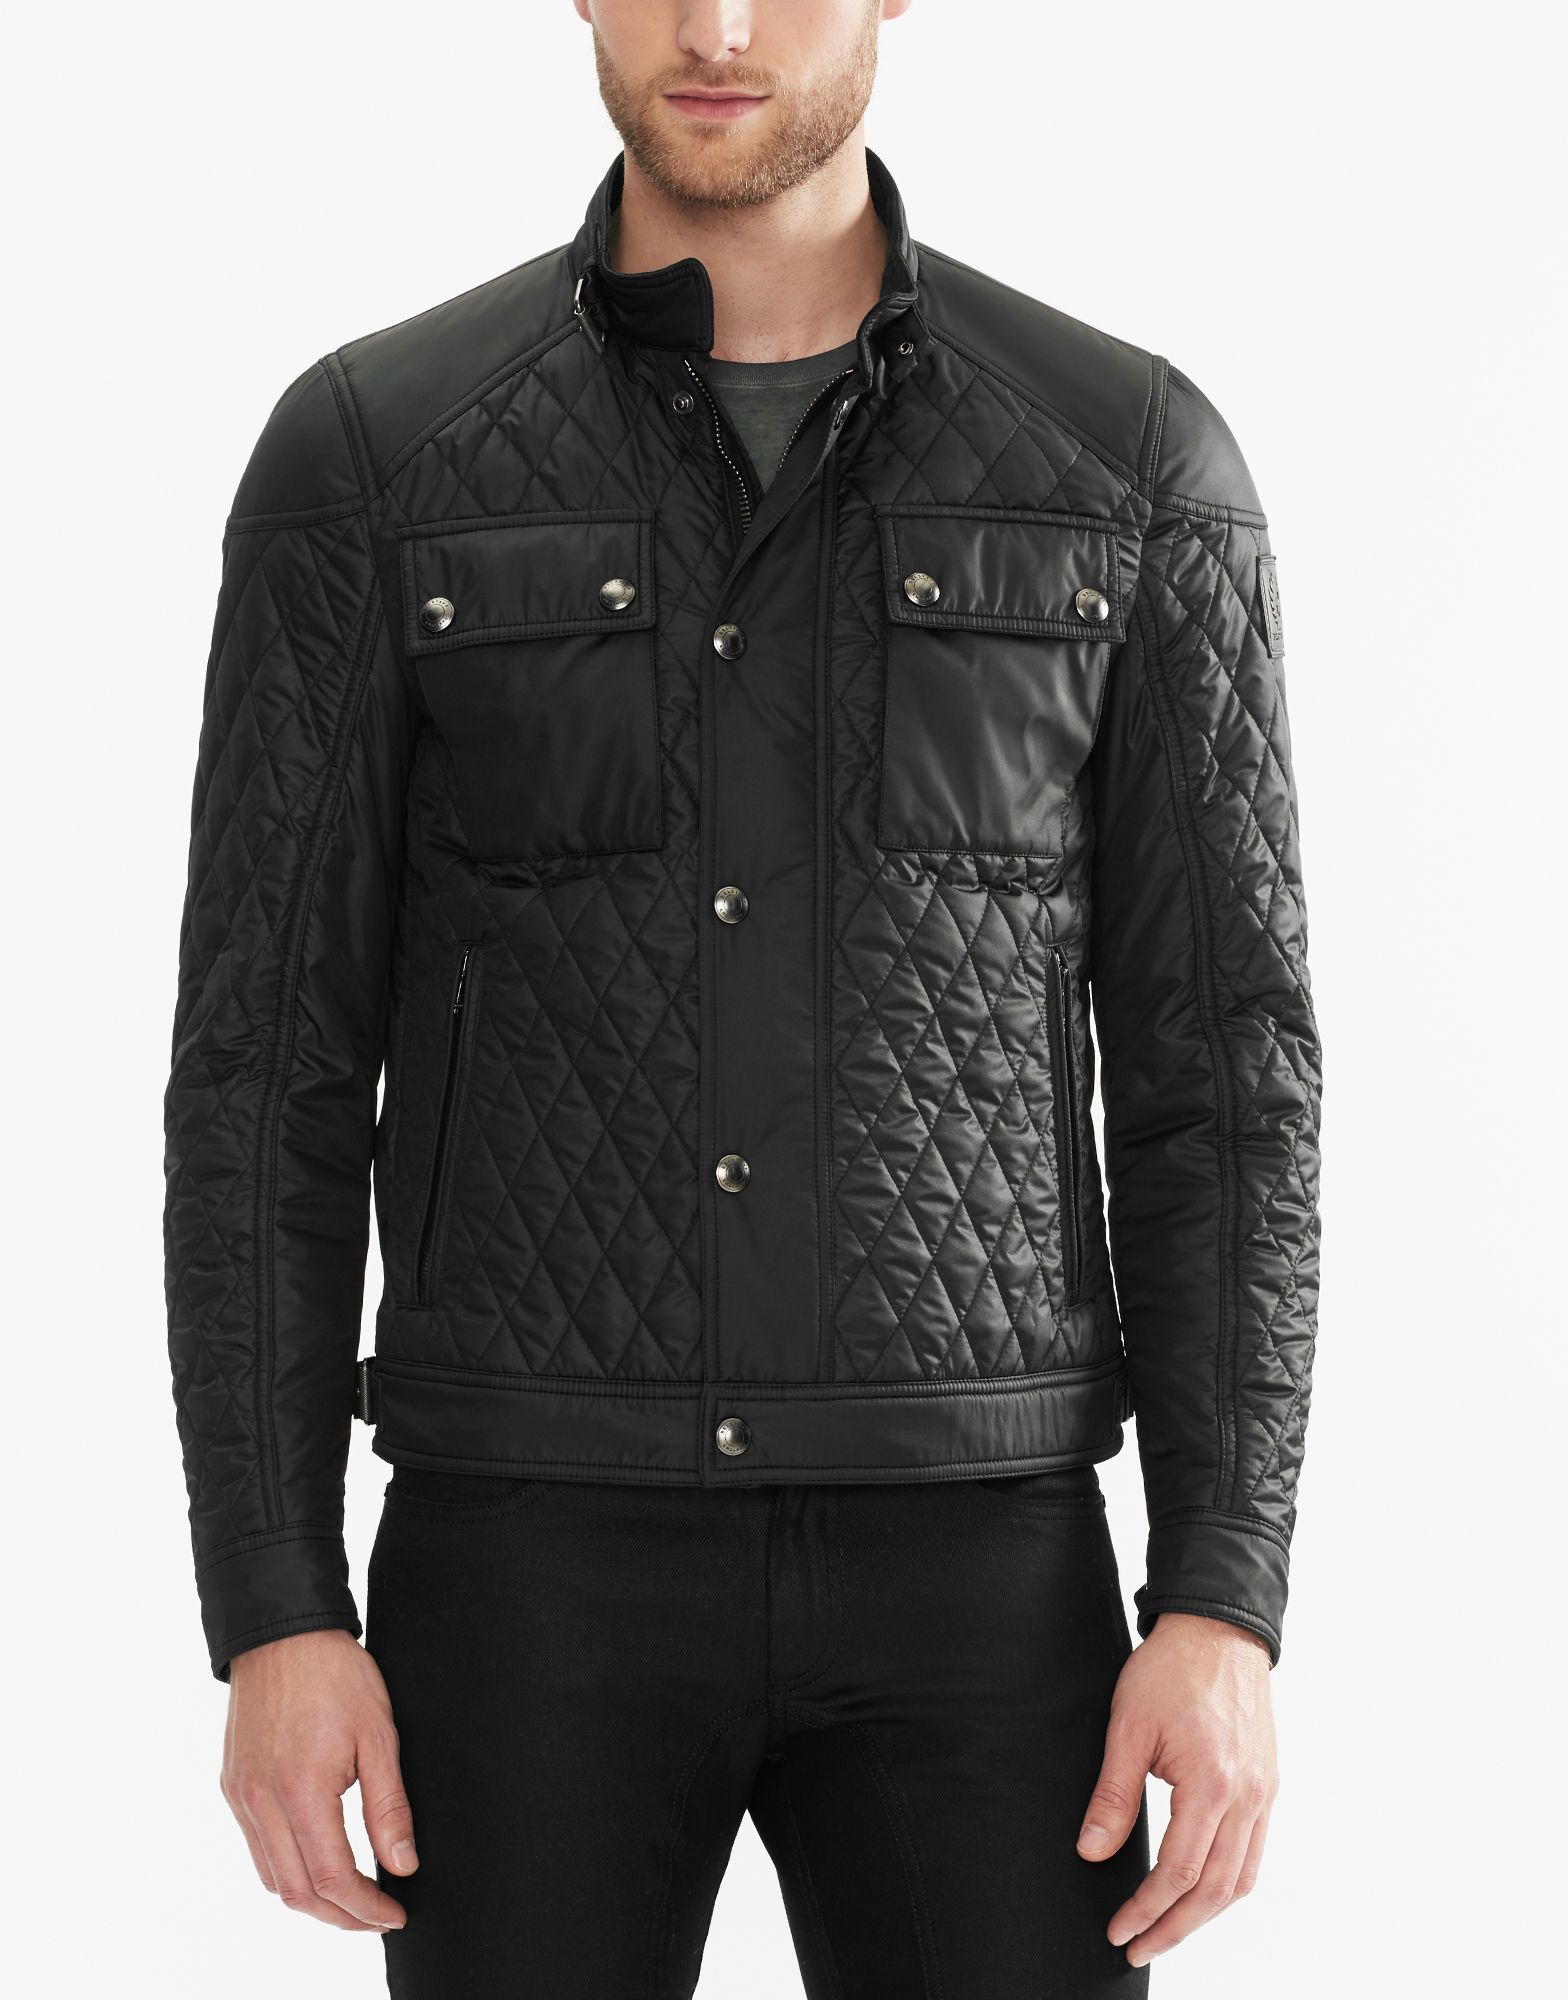 ae29e26b40 Belstaff - Racemaster Quilt - In Black Technical Quilt | Belstaff in ...